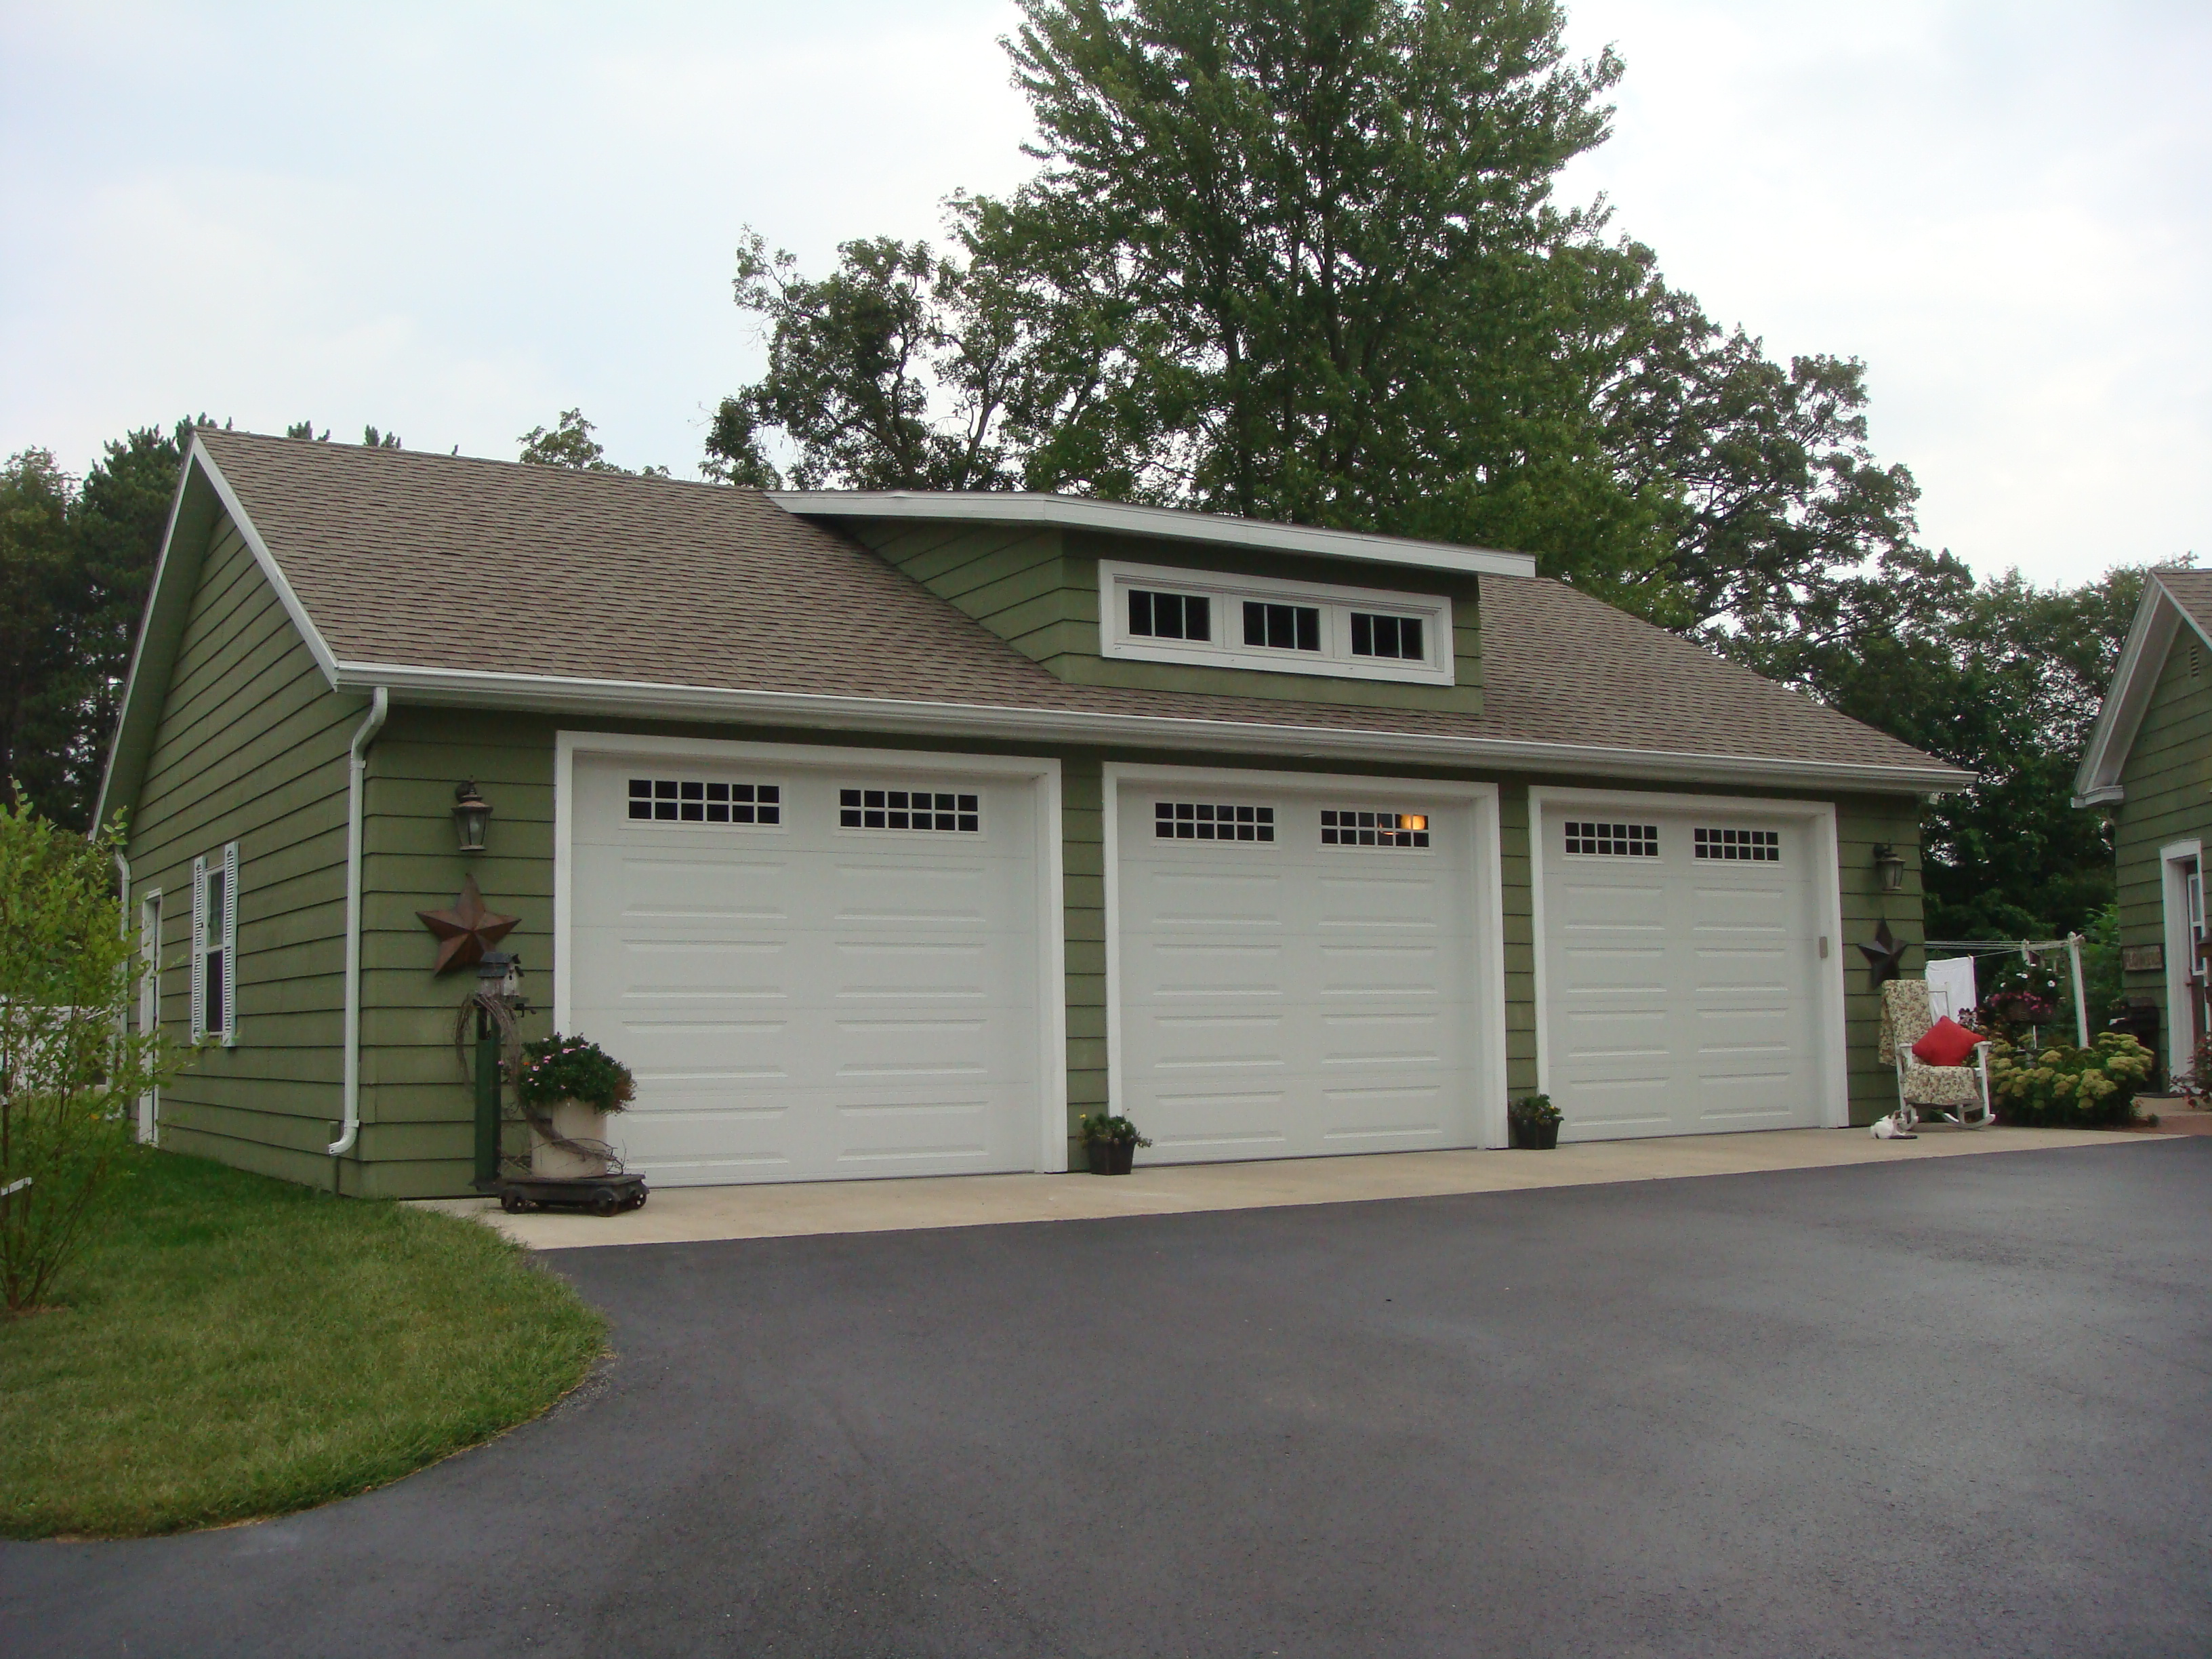 3 car garage with loft www car garages log garages with for One car garage kit with loft